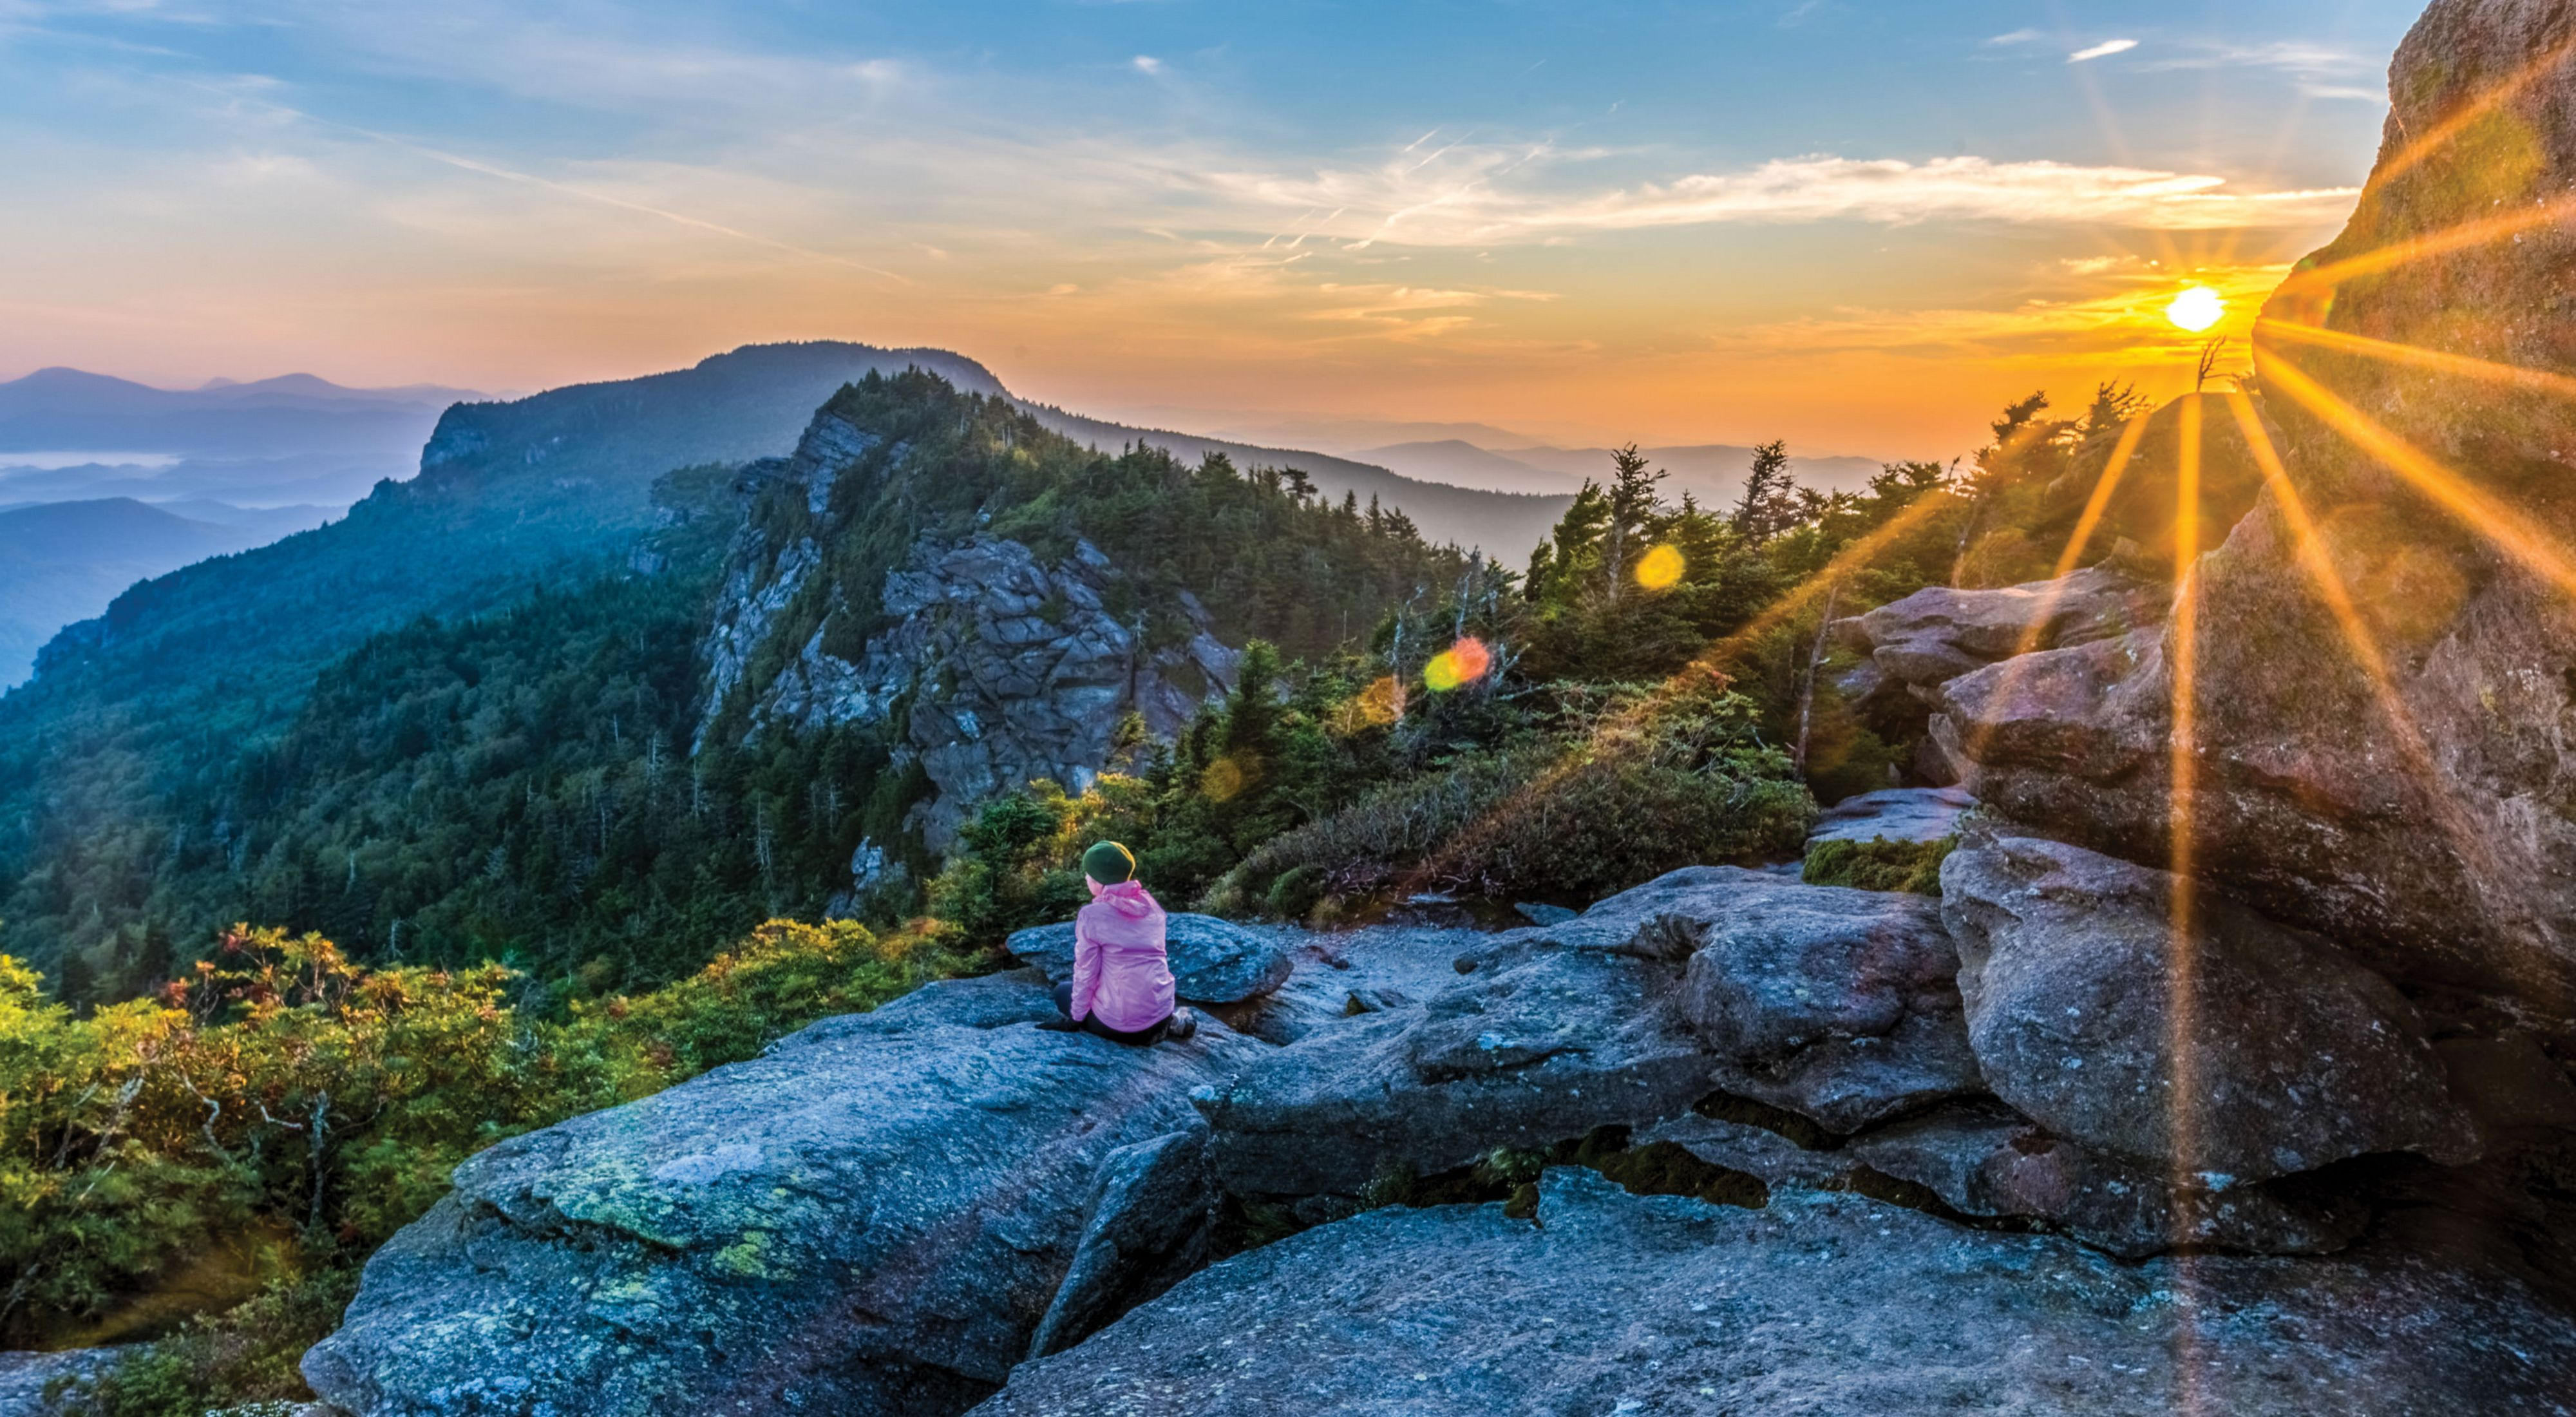 Frances experiences sunrise at Attic Window after camping on Grandfather Mountain ridge.